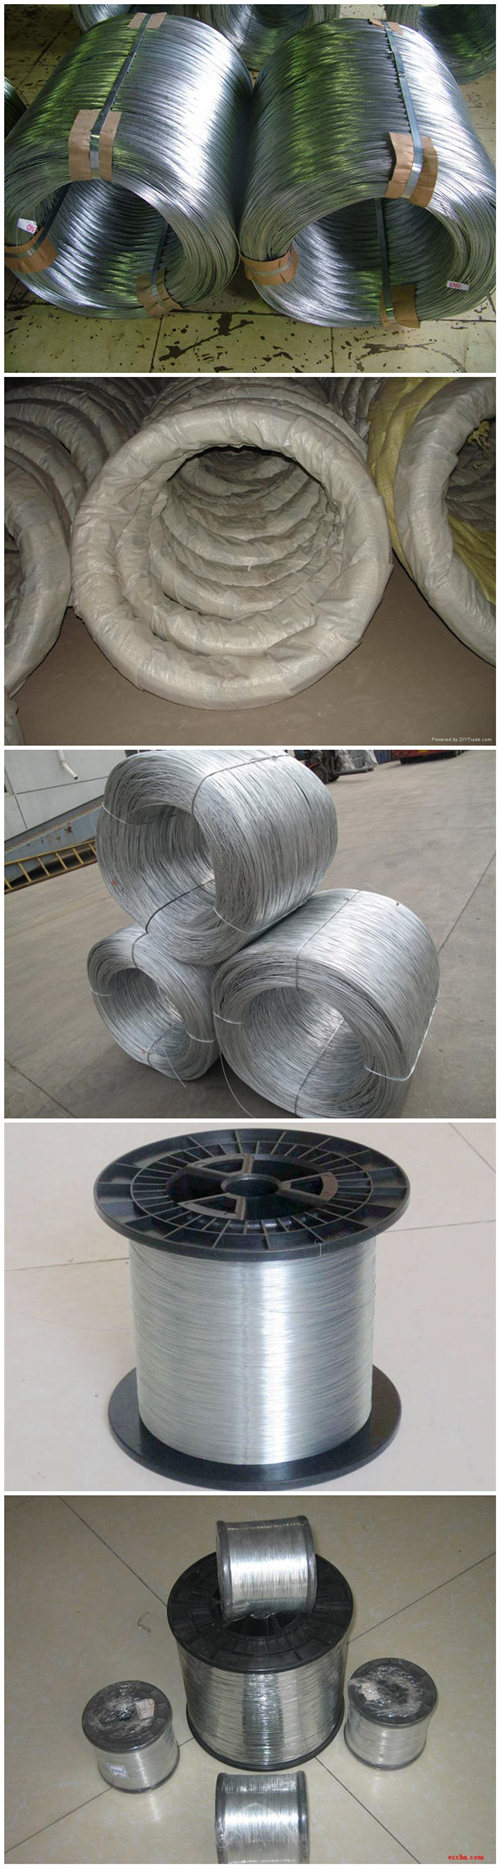 Hot Sale Galvanized Iron Wire / Lacing Wire / Binding Wire